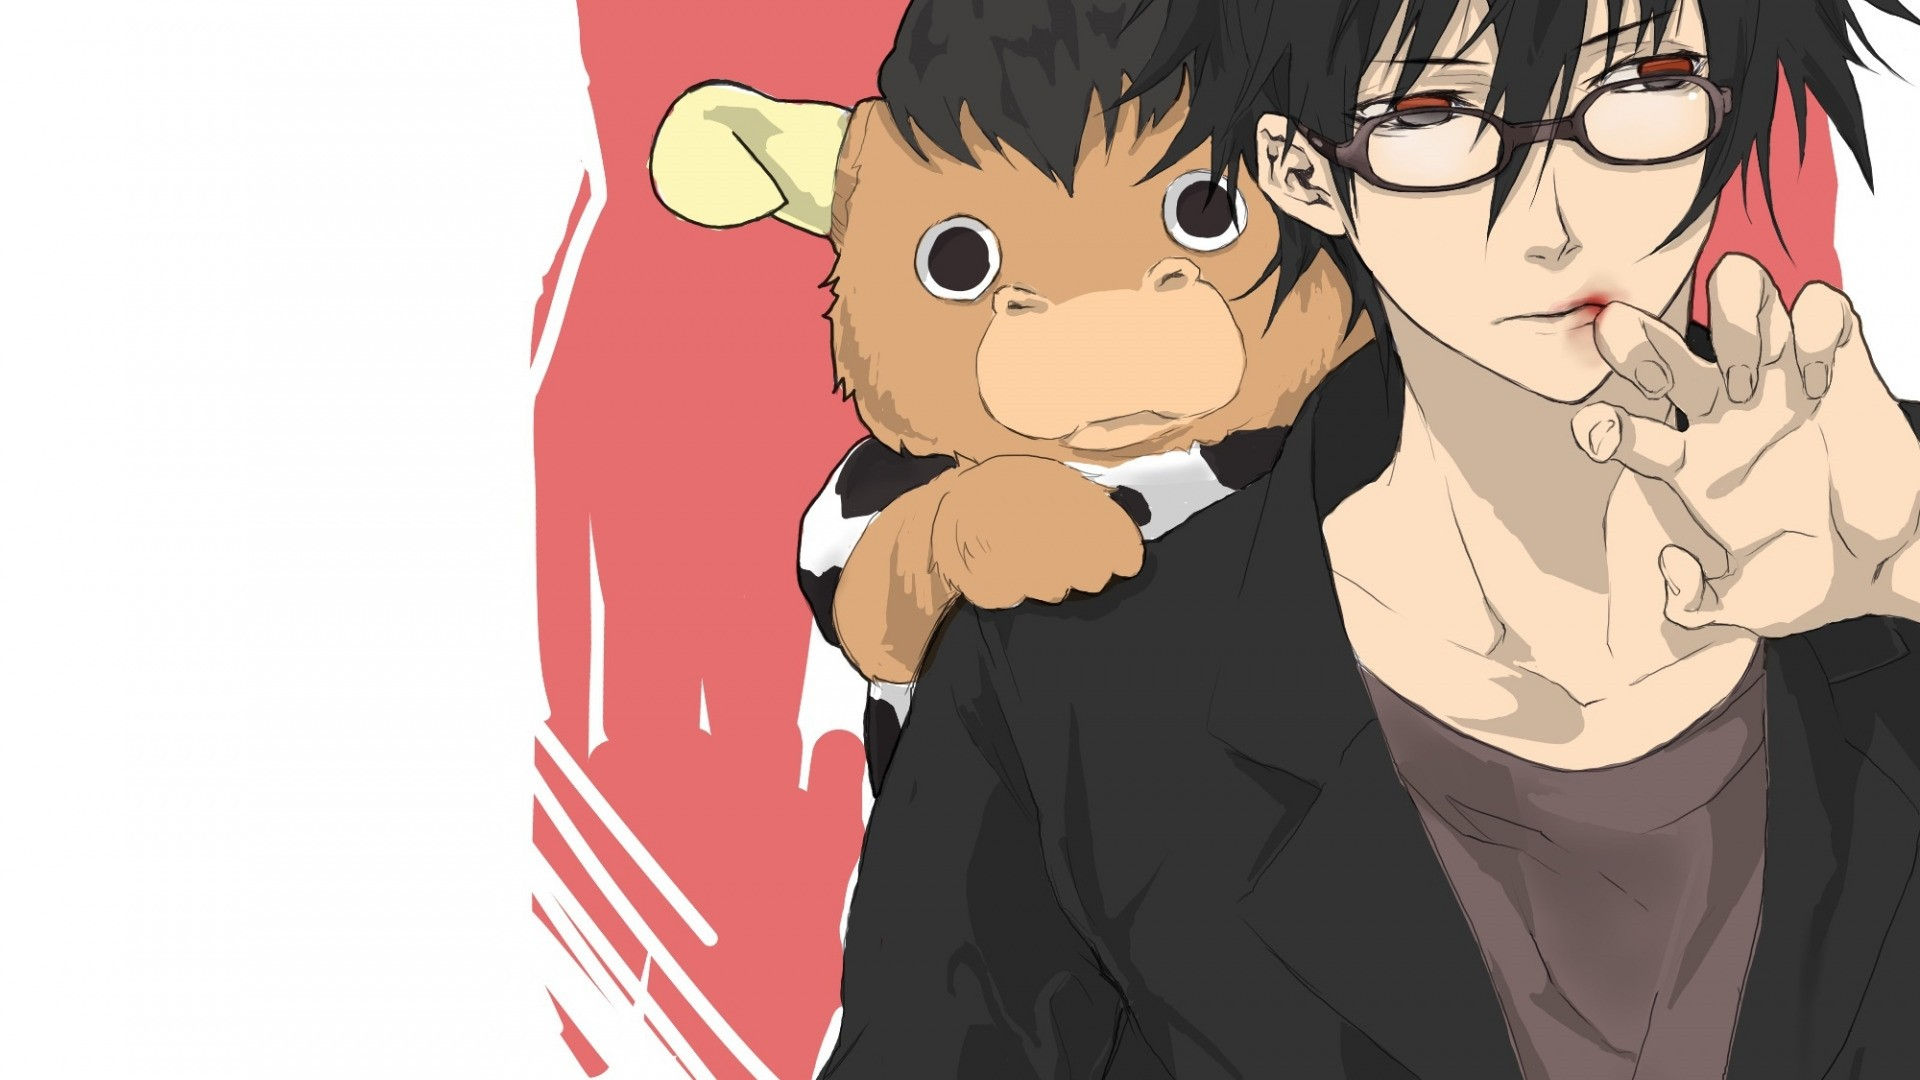 Anime Guy With Glasses Wallpaper for pc